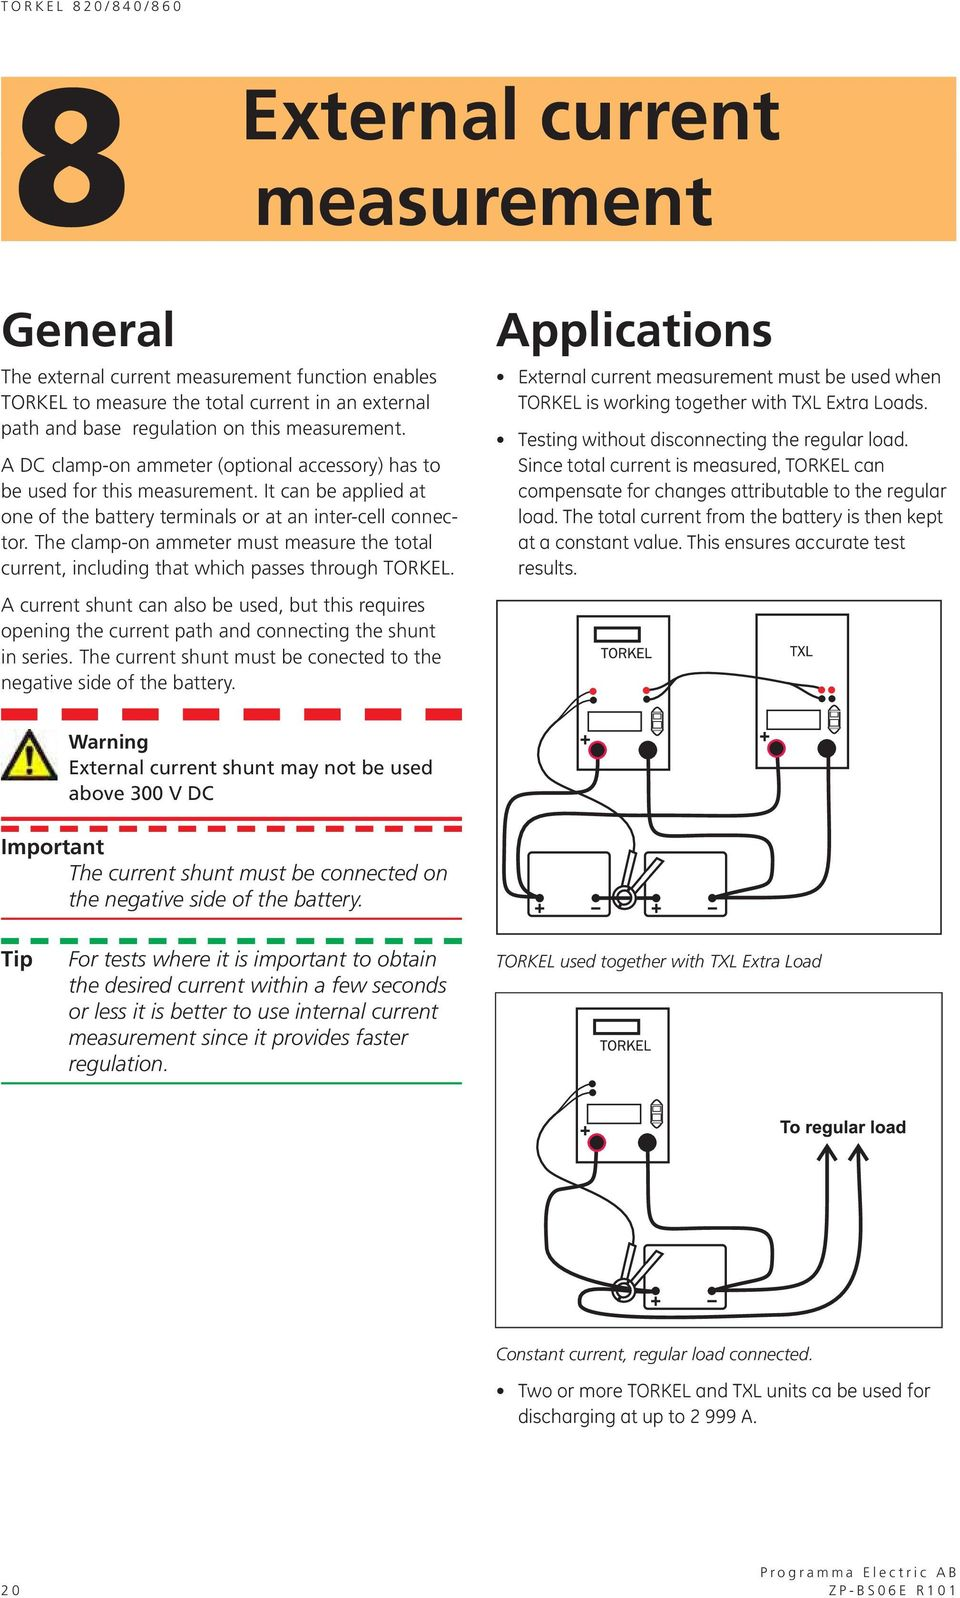 Torkel 820 840 860 Battery Load Units Users Manual Pdf Constant Current Sink Work 2 How Does A The Clamp On Ammeter Must Measure Total Including That Which Passes Through